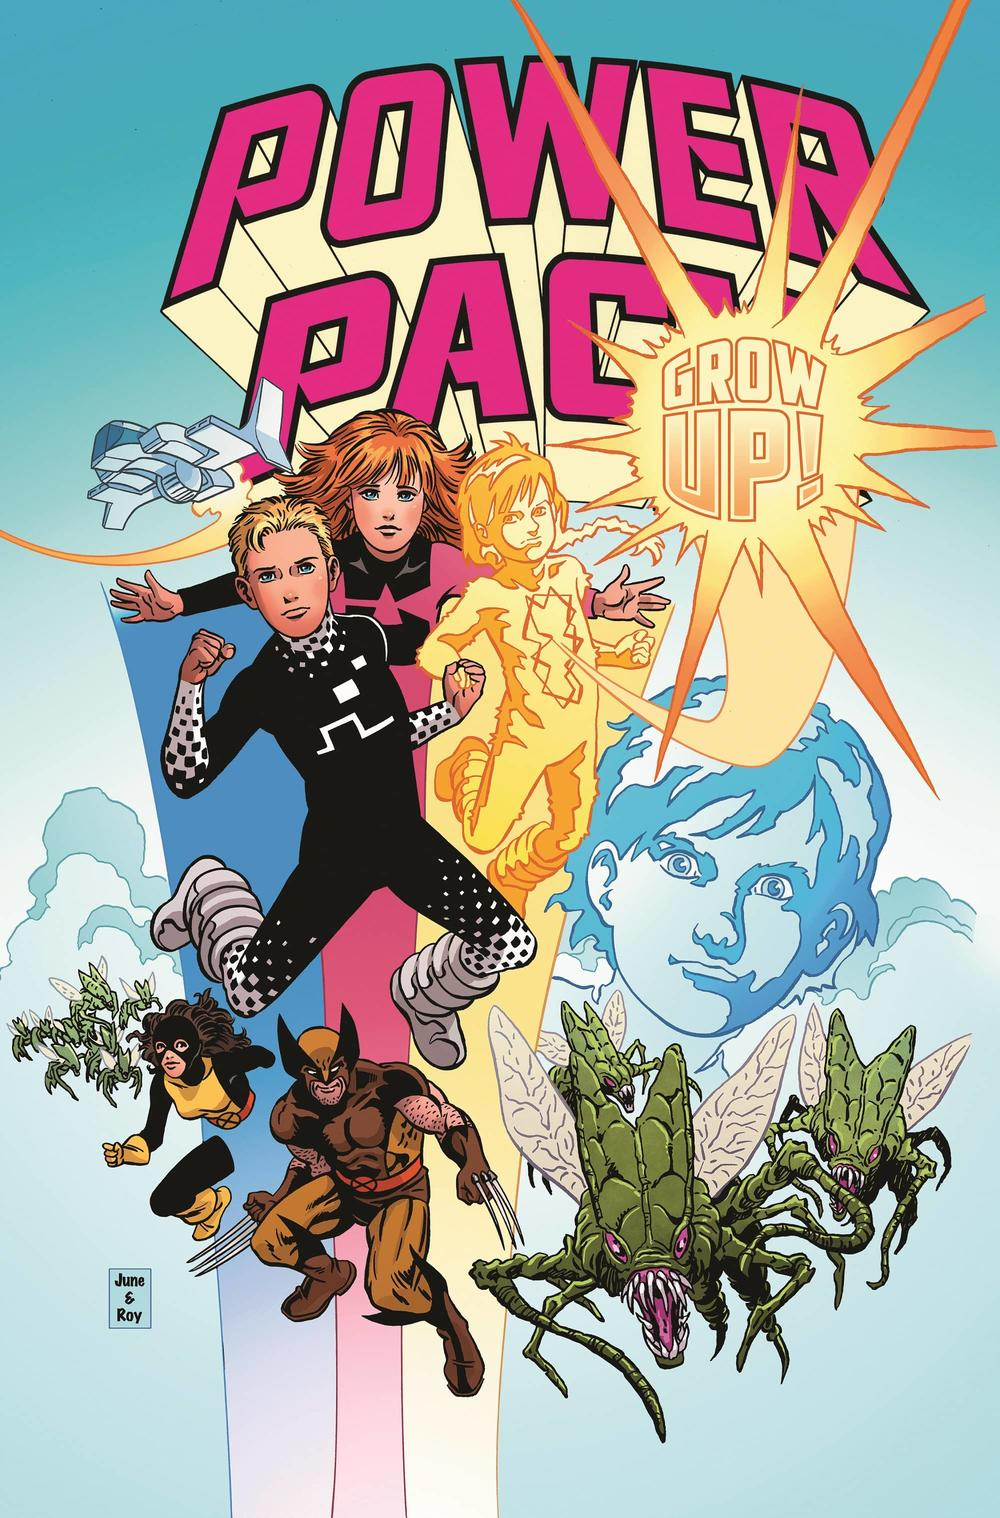 POWER PACK: GROW UP! #1 cover by June Brigman and Roy Richardson